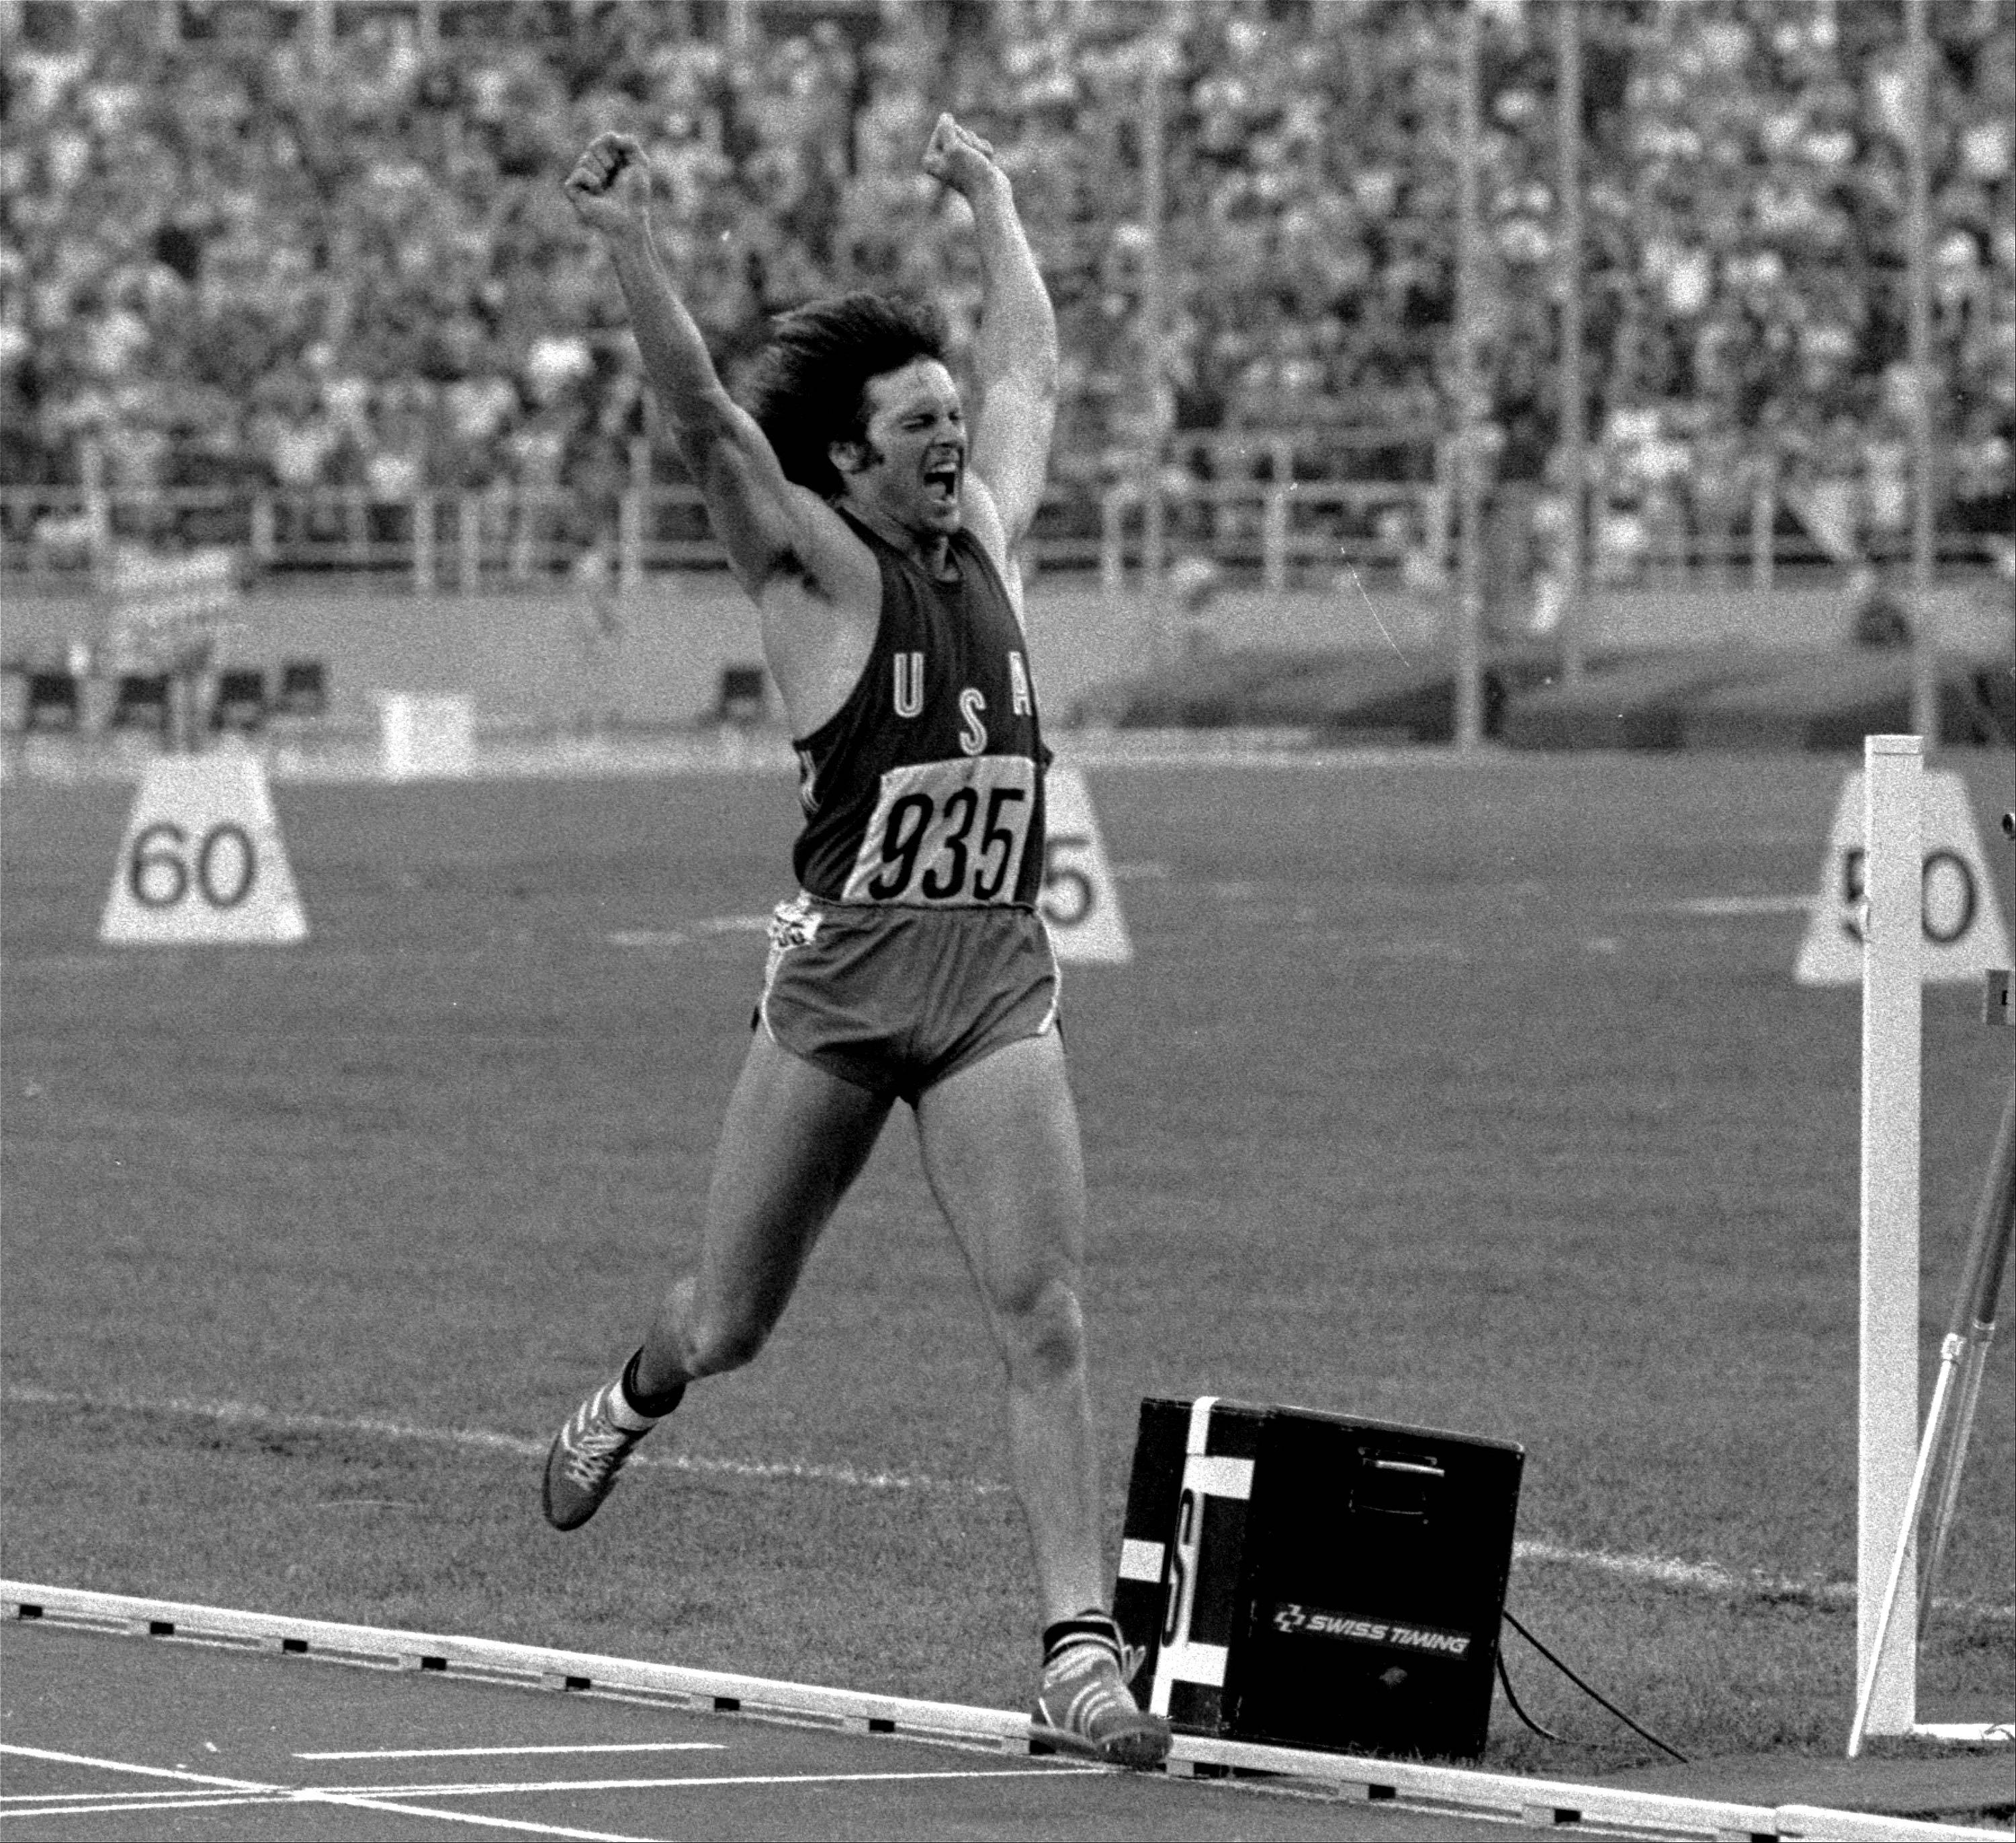 "This July 30, 1976 file photo shows athlete Bruce Jenner reacting after securing gold in the Olympic Decathlon in Montreal, Canada. ""Keeping Up With the Kardashians"" family patriarch Bruce Jenner, the 1976 decathlon gold medalist, will head to London to be part of the E! team there later this month. E! became one of NBC Universal's stable of networks a year and a half ago."